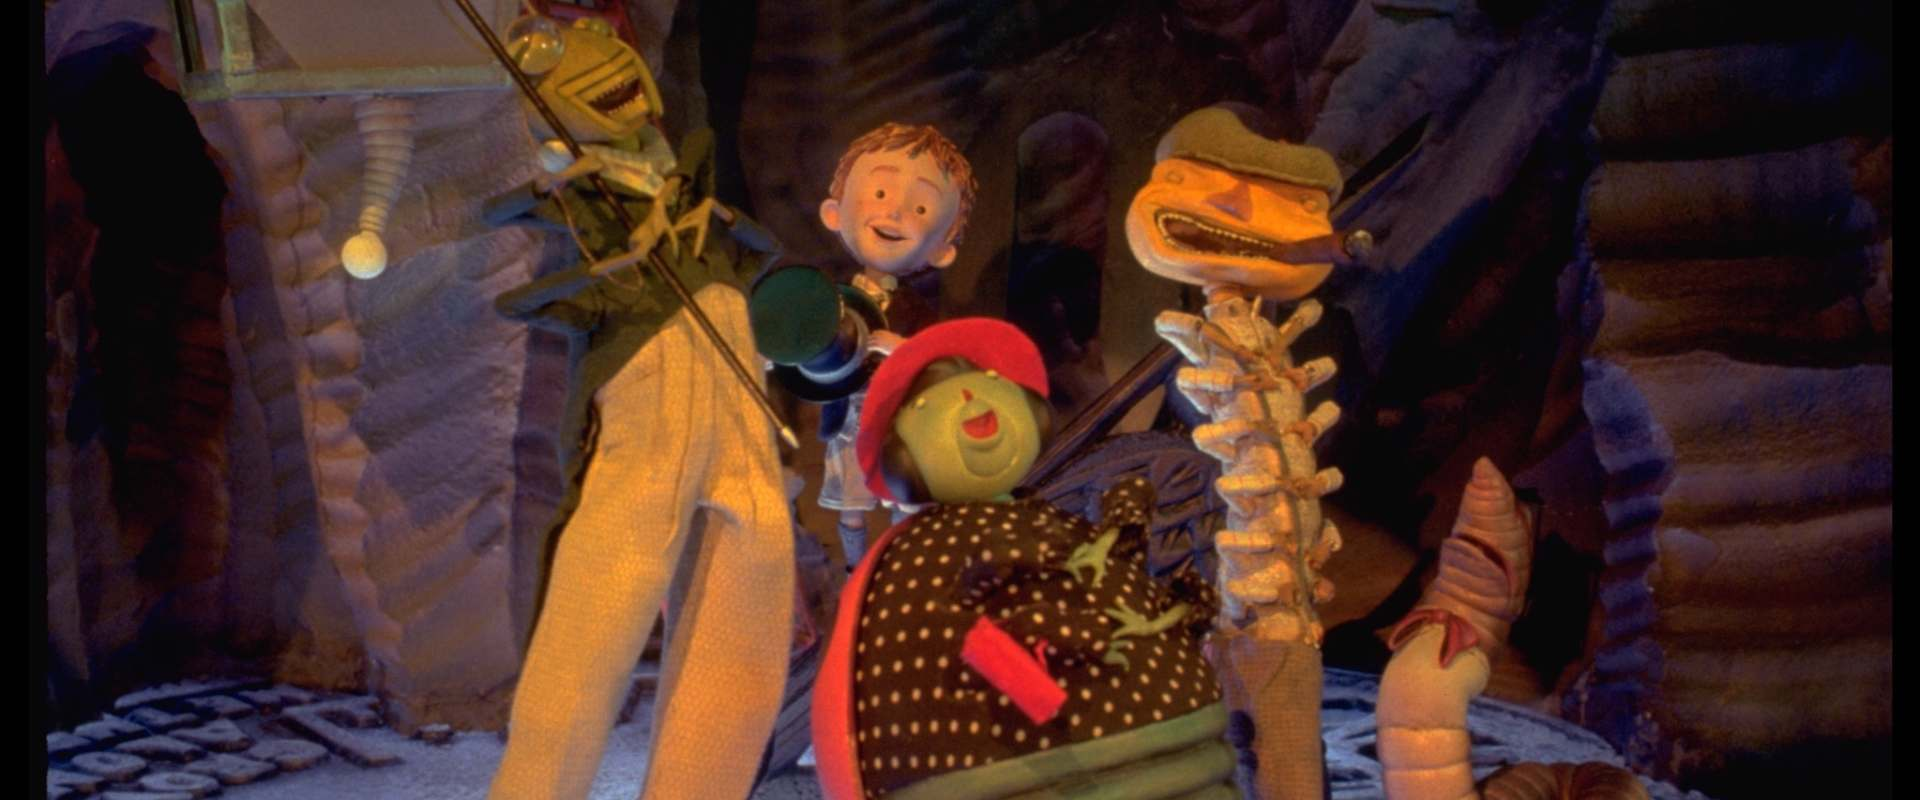 james and the giant peach free online